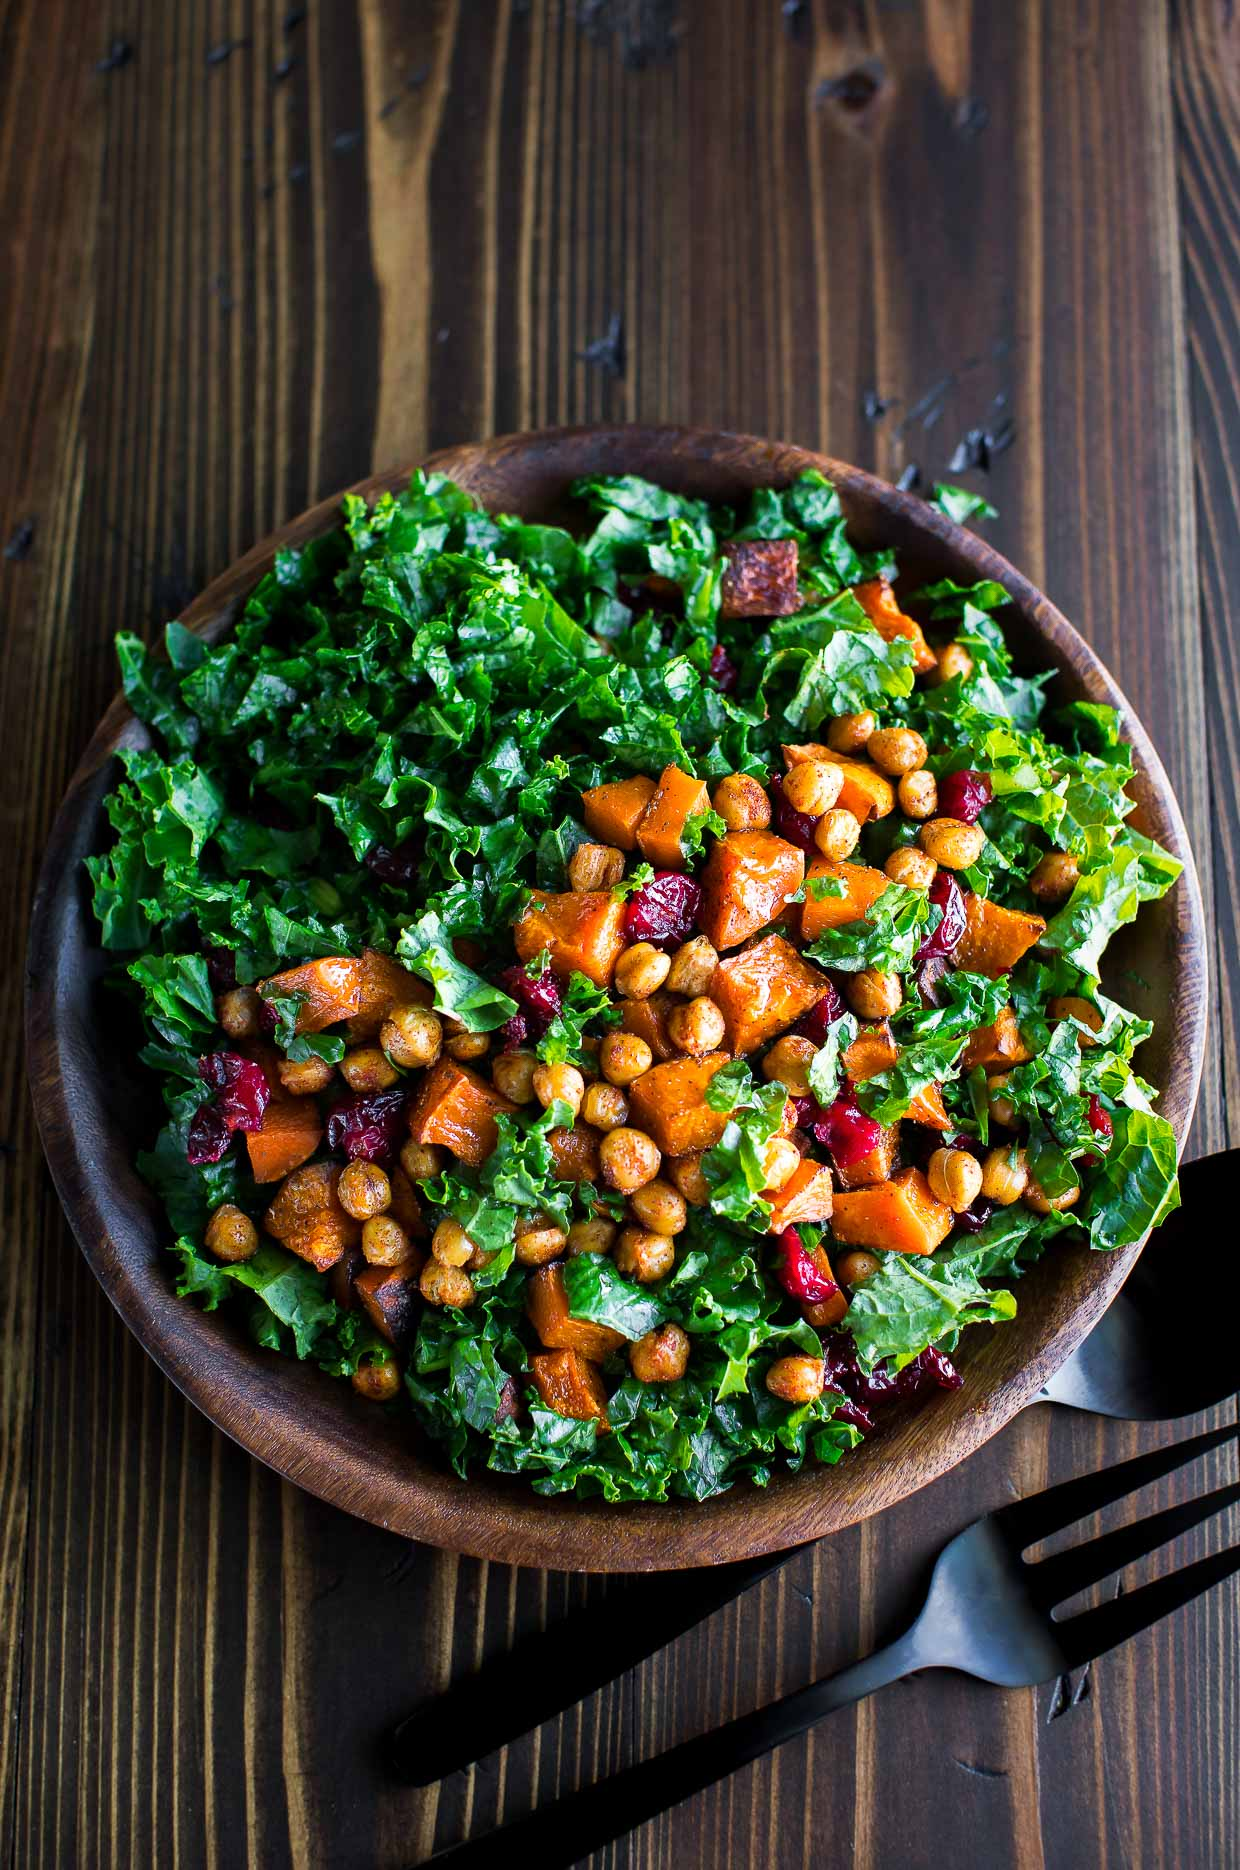 Spicy Kale Salad - $14.99/9x13 Pan